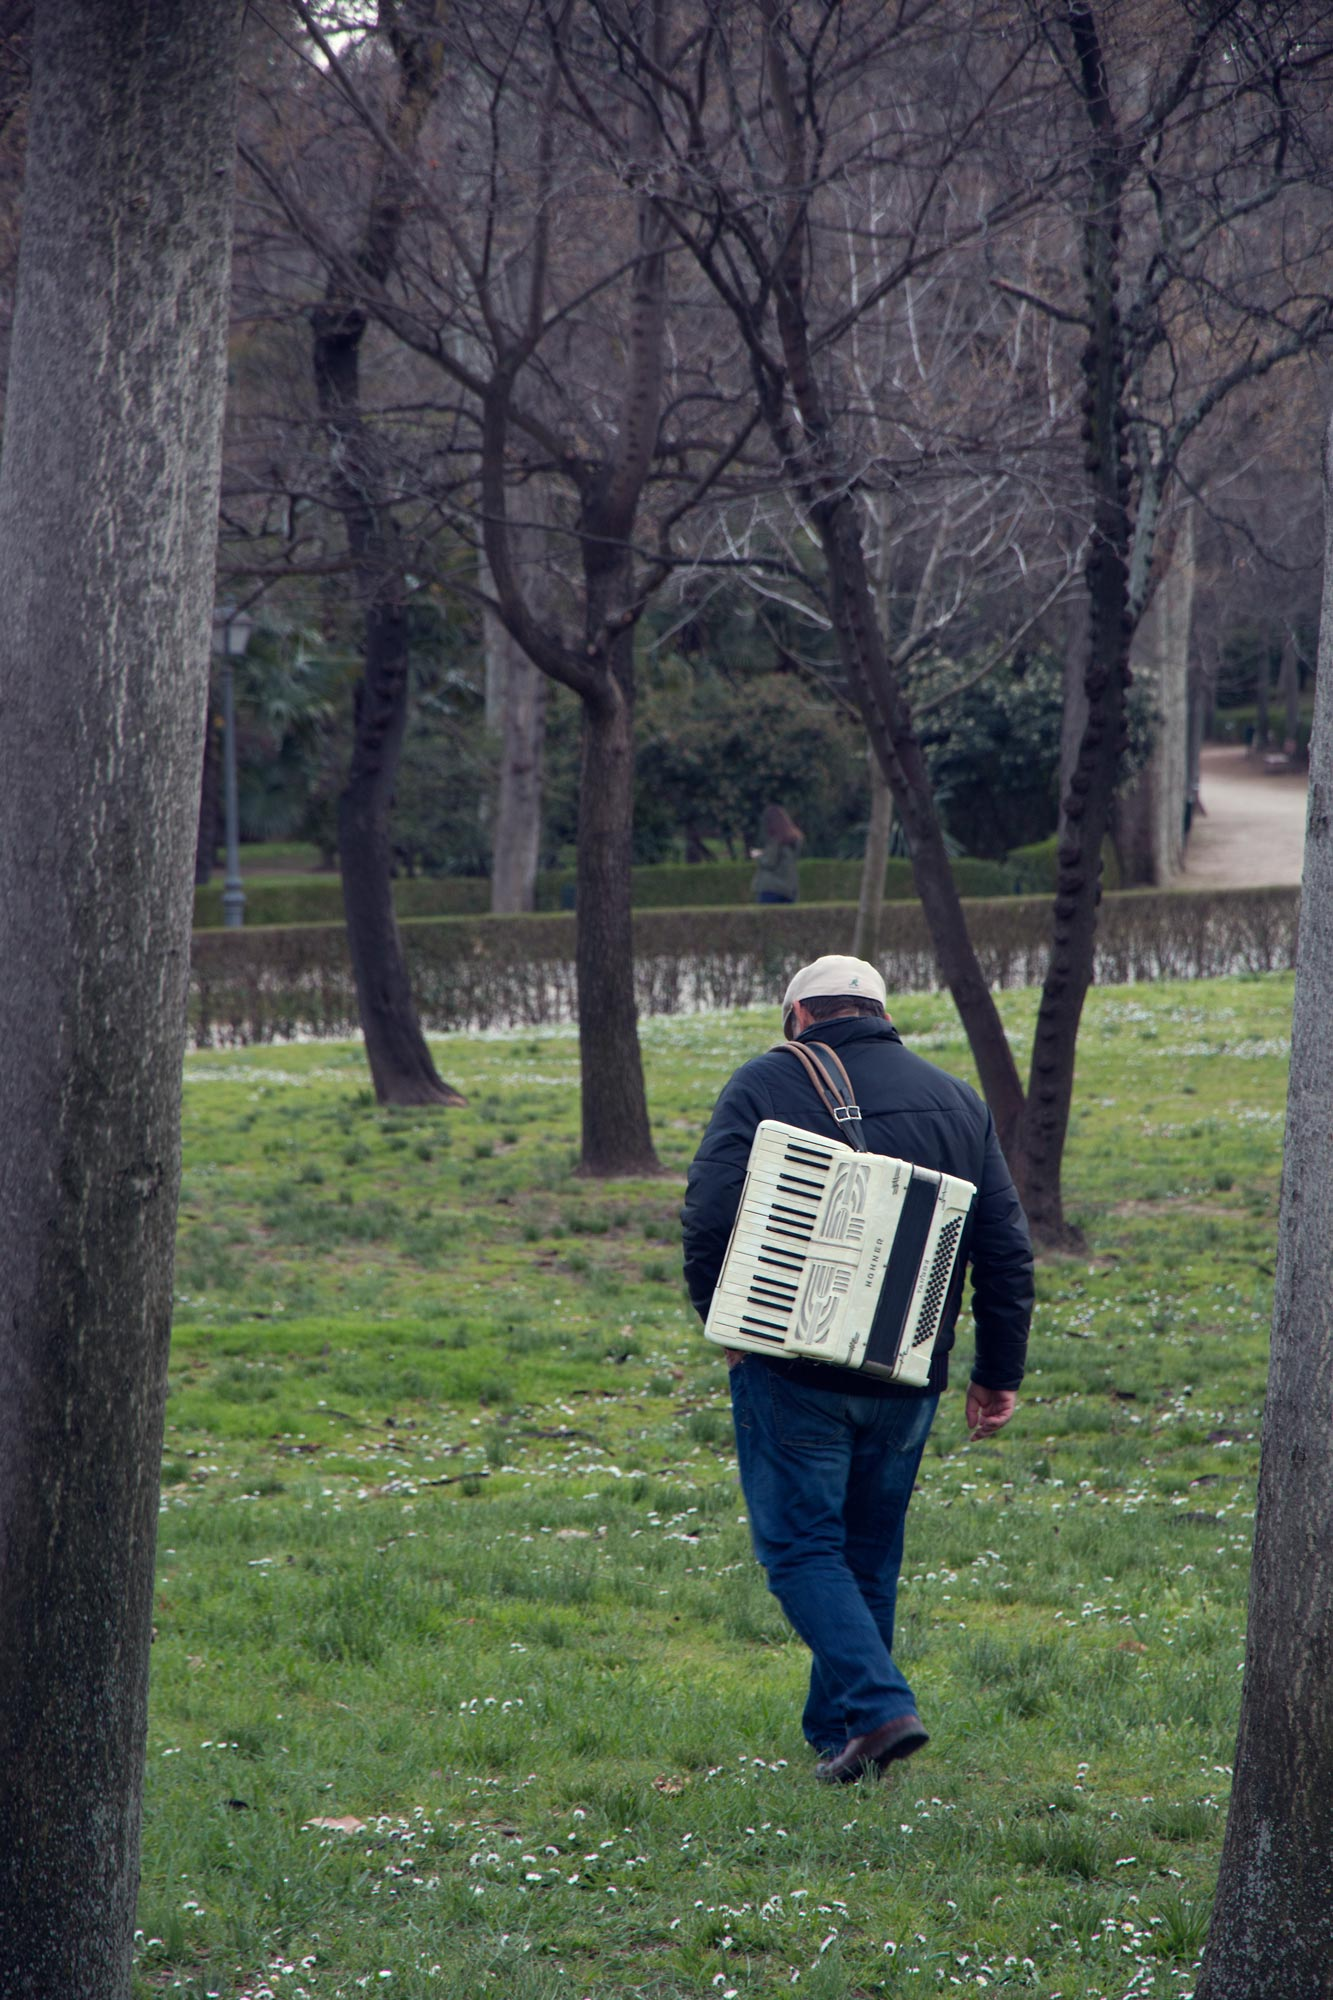 Accordian player in Madrid's Buen Retiro Park